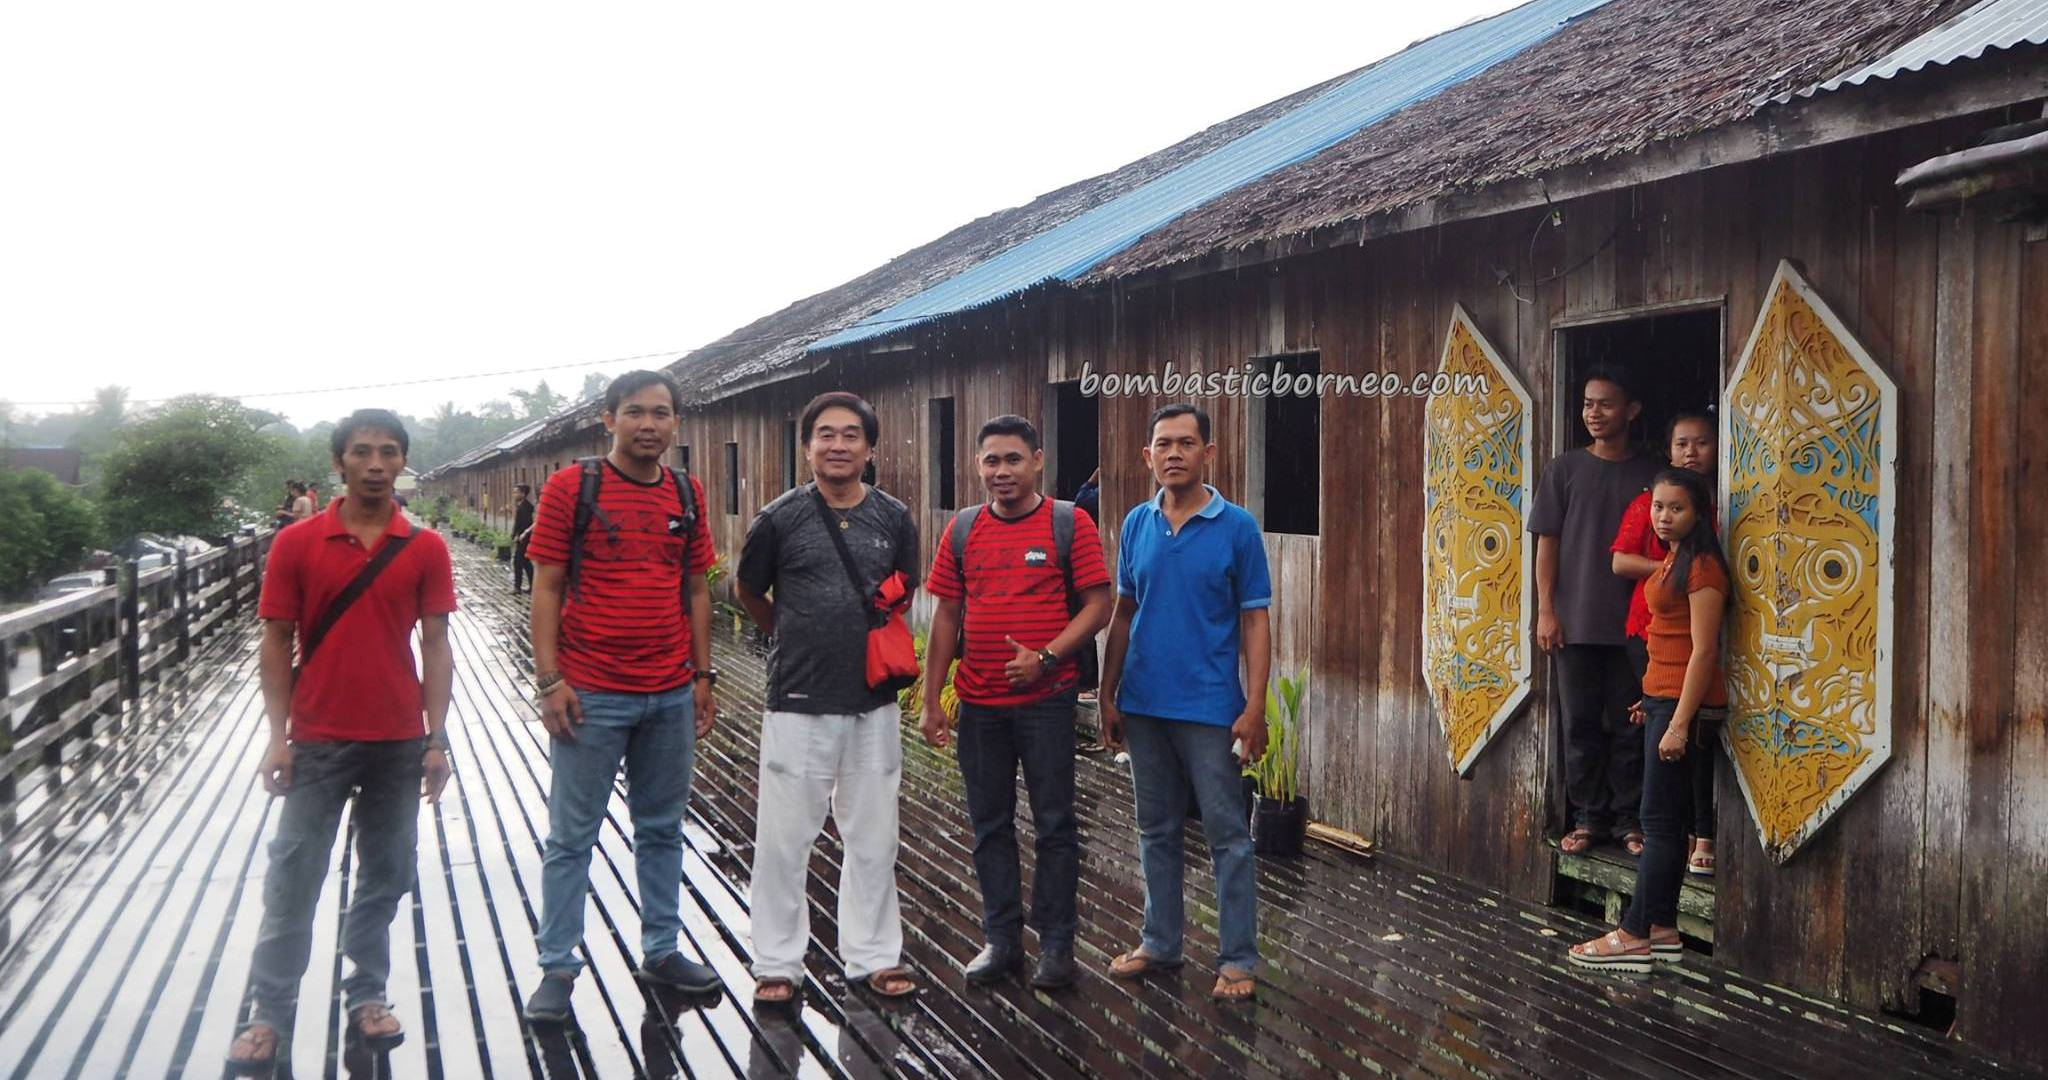 transborneo, authentic, backpackers, culture, Dayak Kanayatn, native, Longhouse, Sengah Temila, Borneo, Indonesia,,Obyek wisata, Tourism, travel guide, village, 婆罗洲原著民长屋